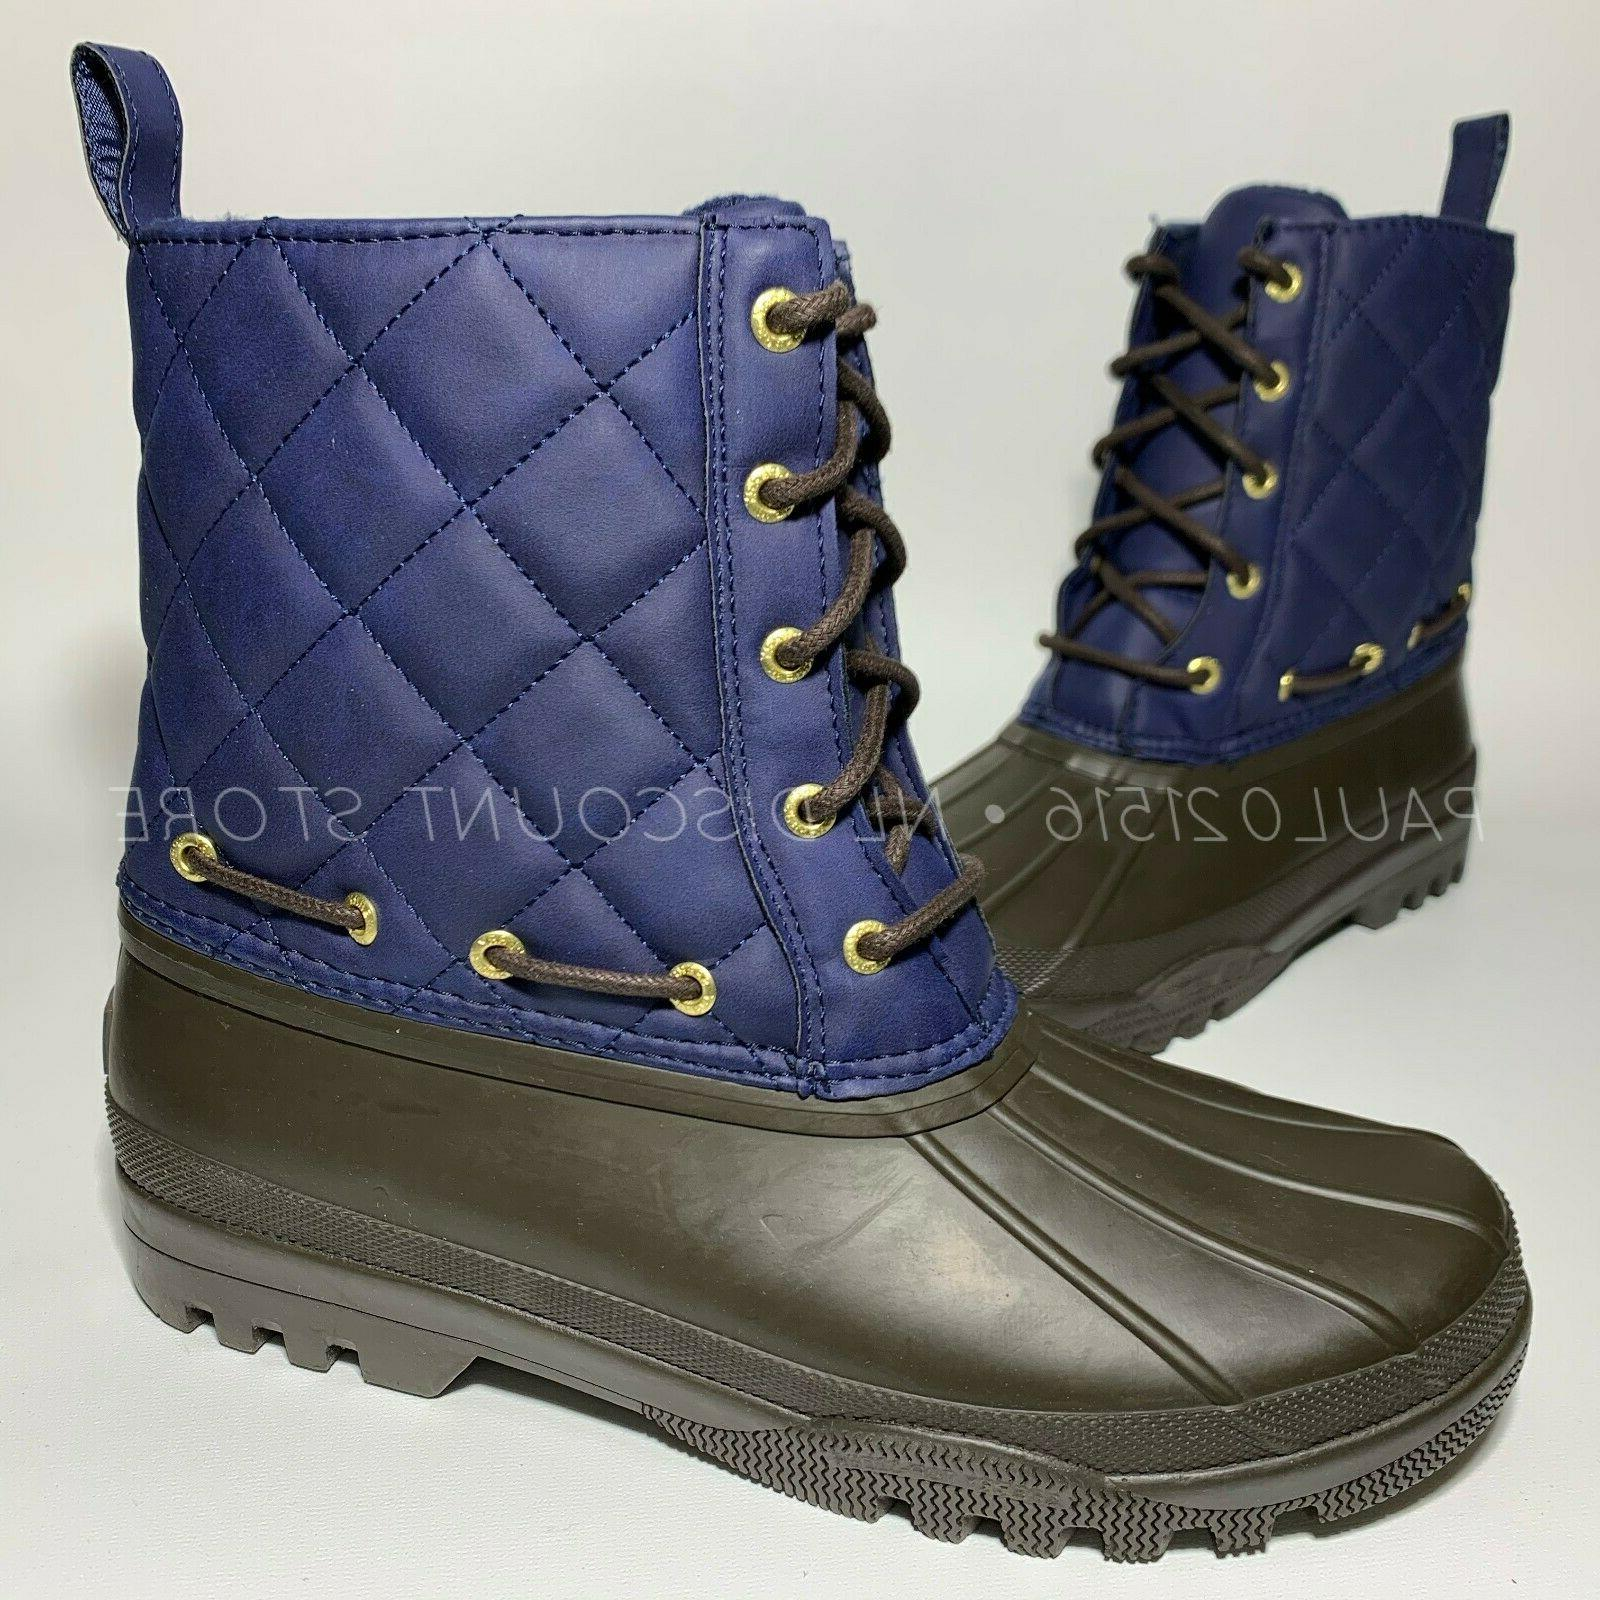 paul sperry gosling boots ankle high women